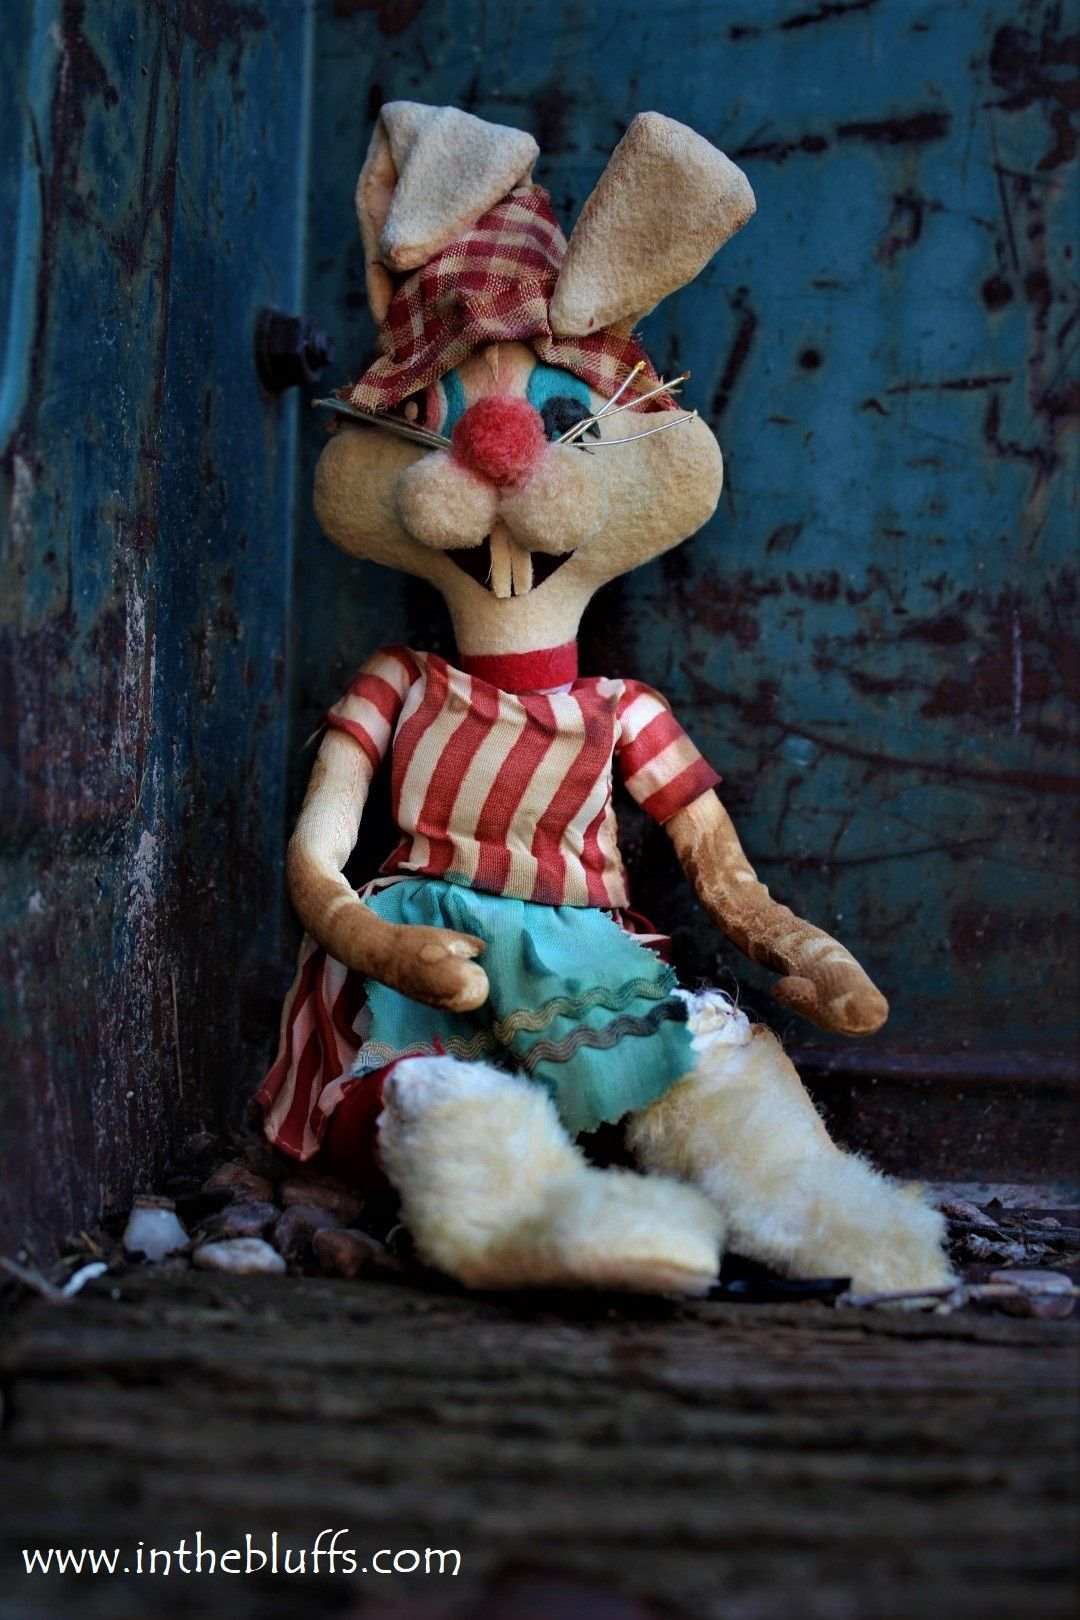 Dirty Easter Bunny : dirty, easter, bunny, Abandoned, Rurex, Photography, Filthy, Easter, Bunny, Stuffed, Bluffs, Toys,, Rabbit, Photos,